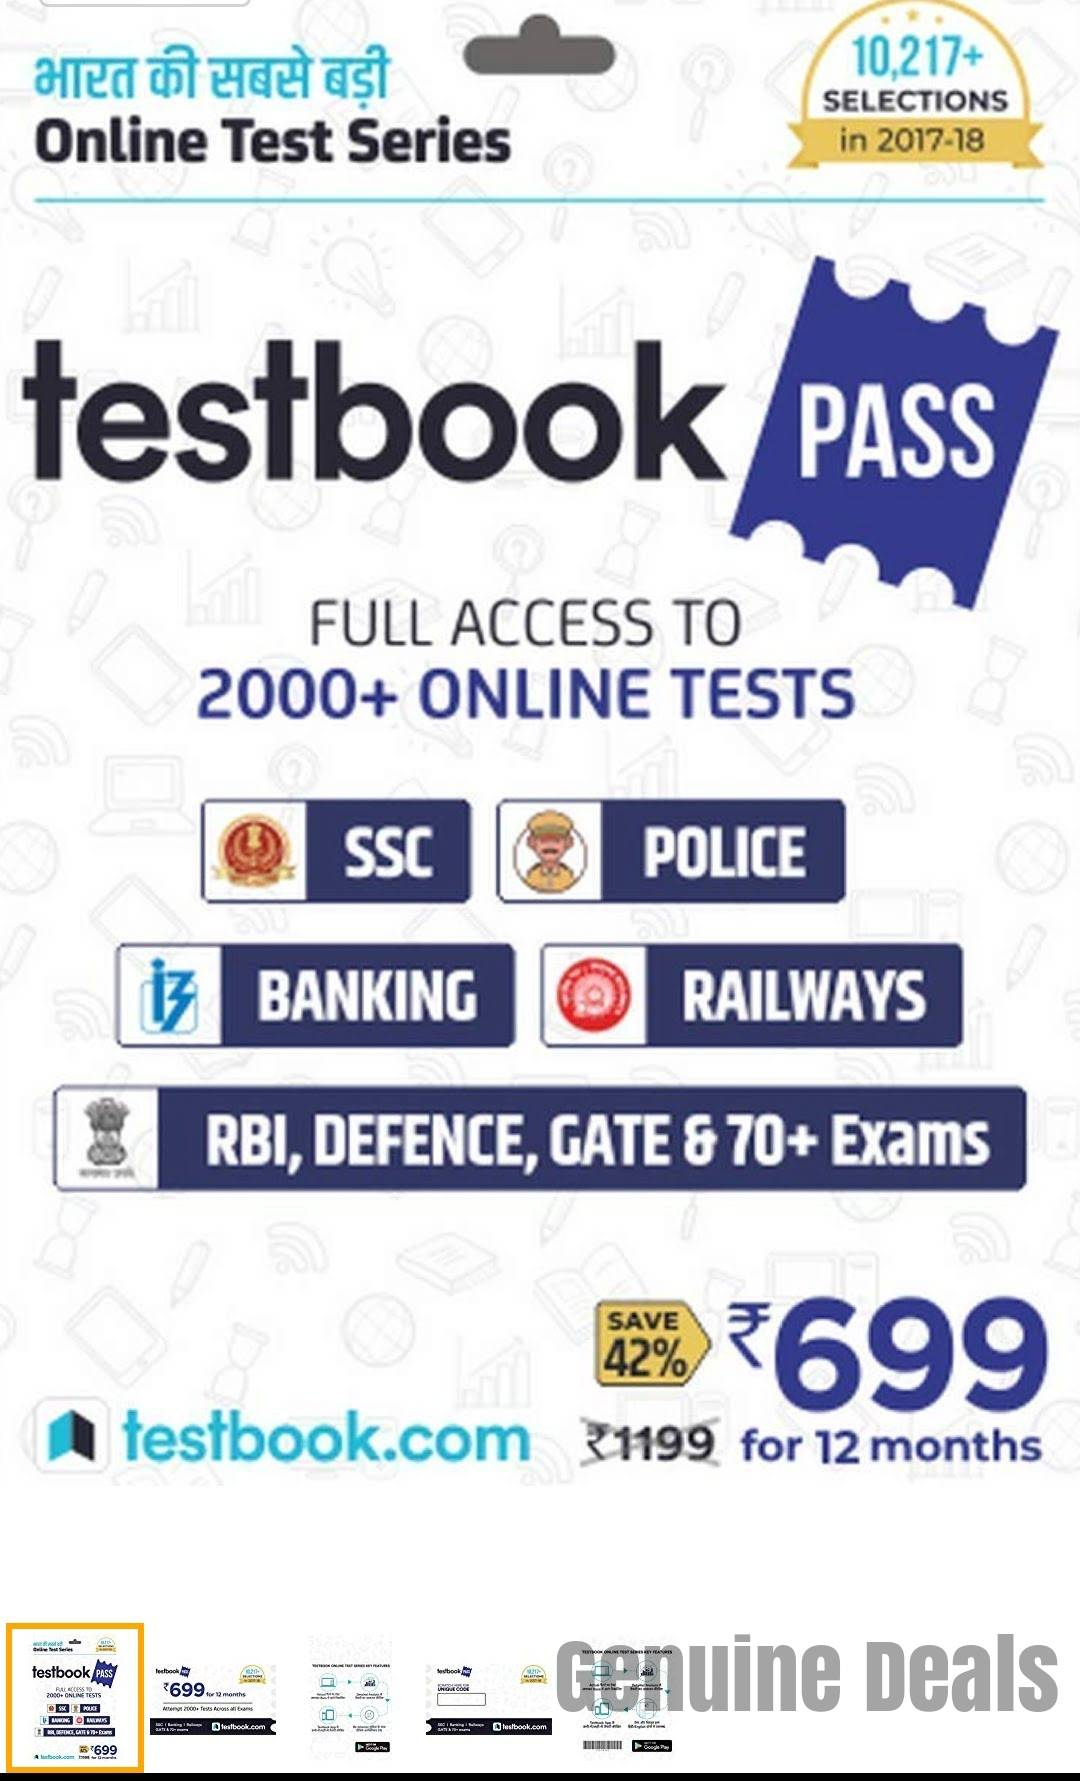 Testbook Pass – 1 Year Subscription at Rs.174